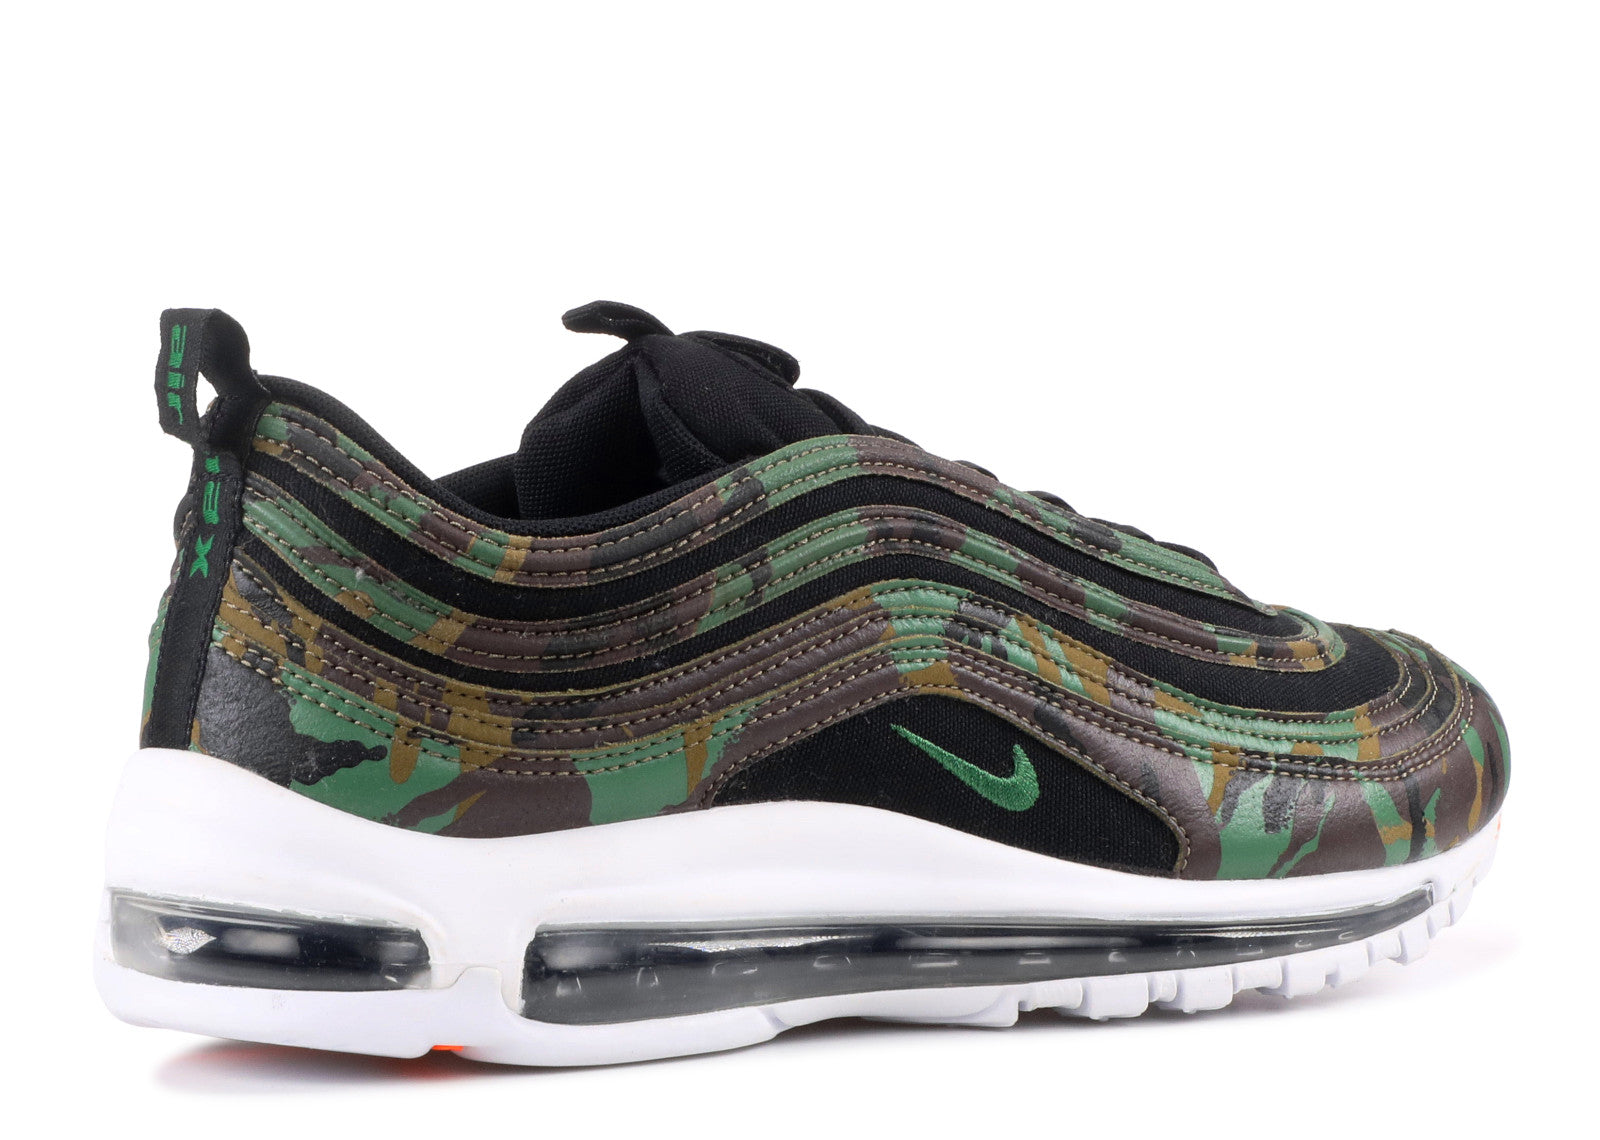 Nike Air Max 97 Premium QS 'Country Camo UK'